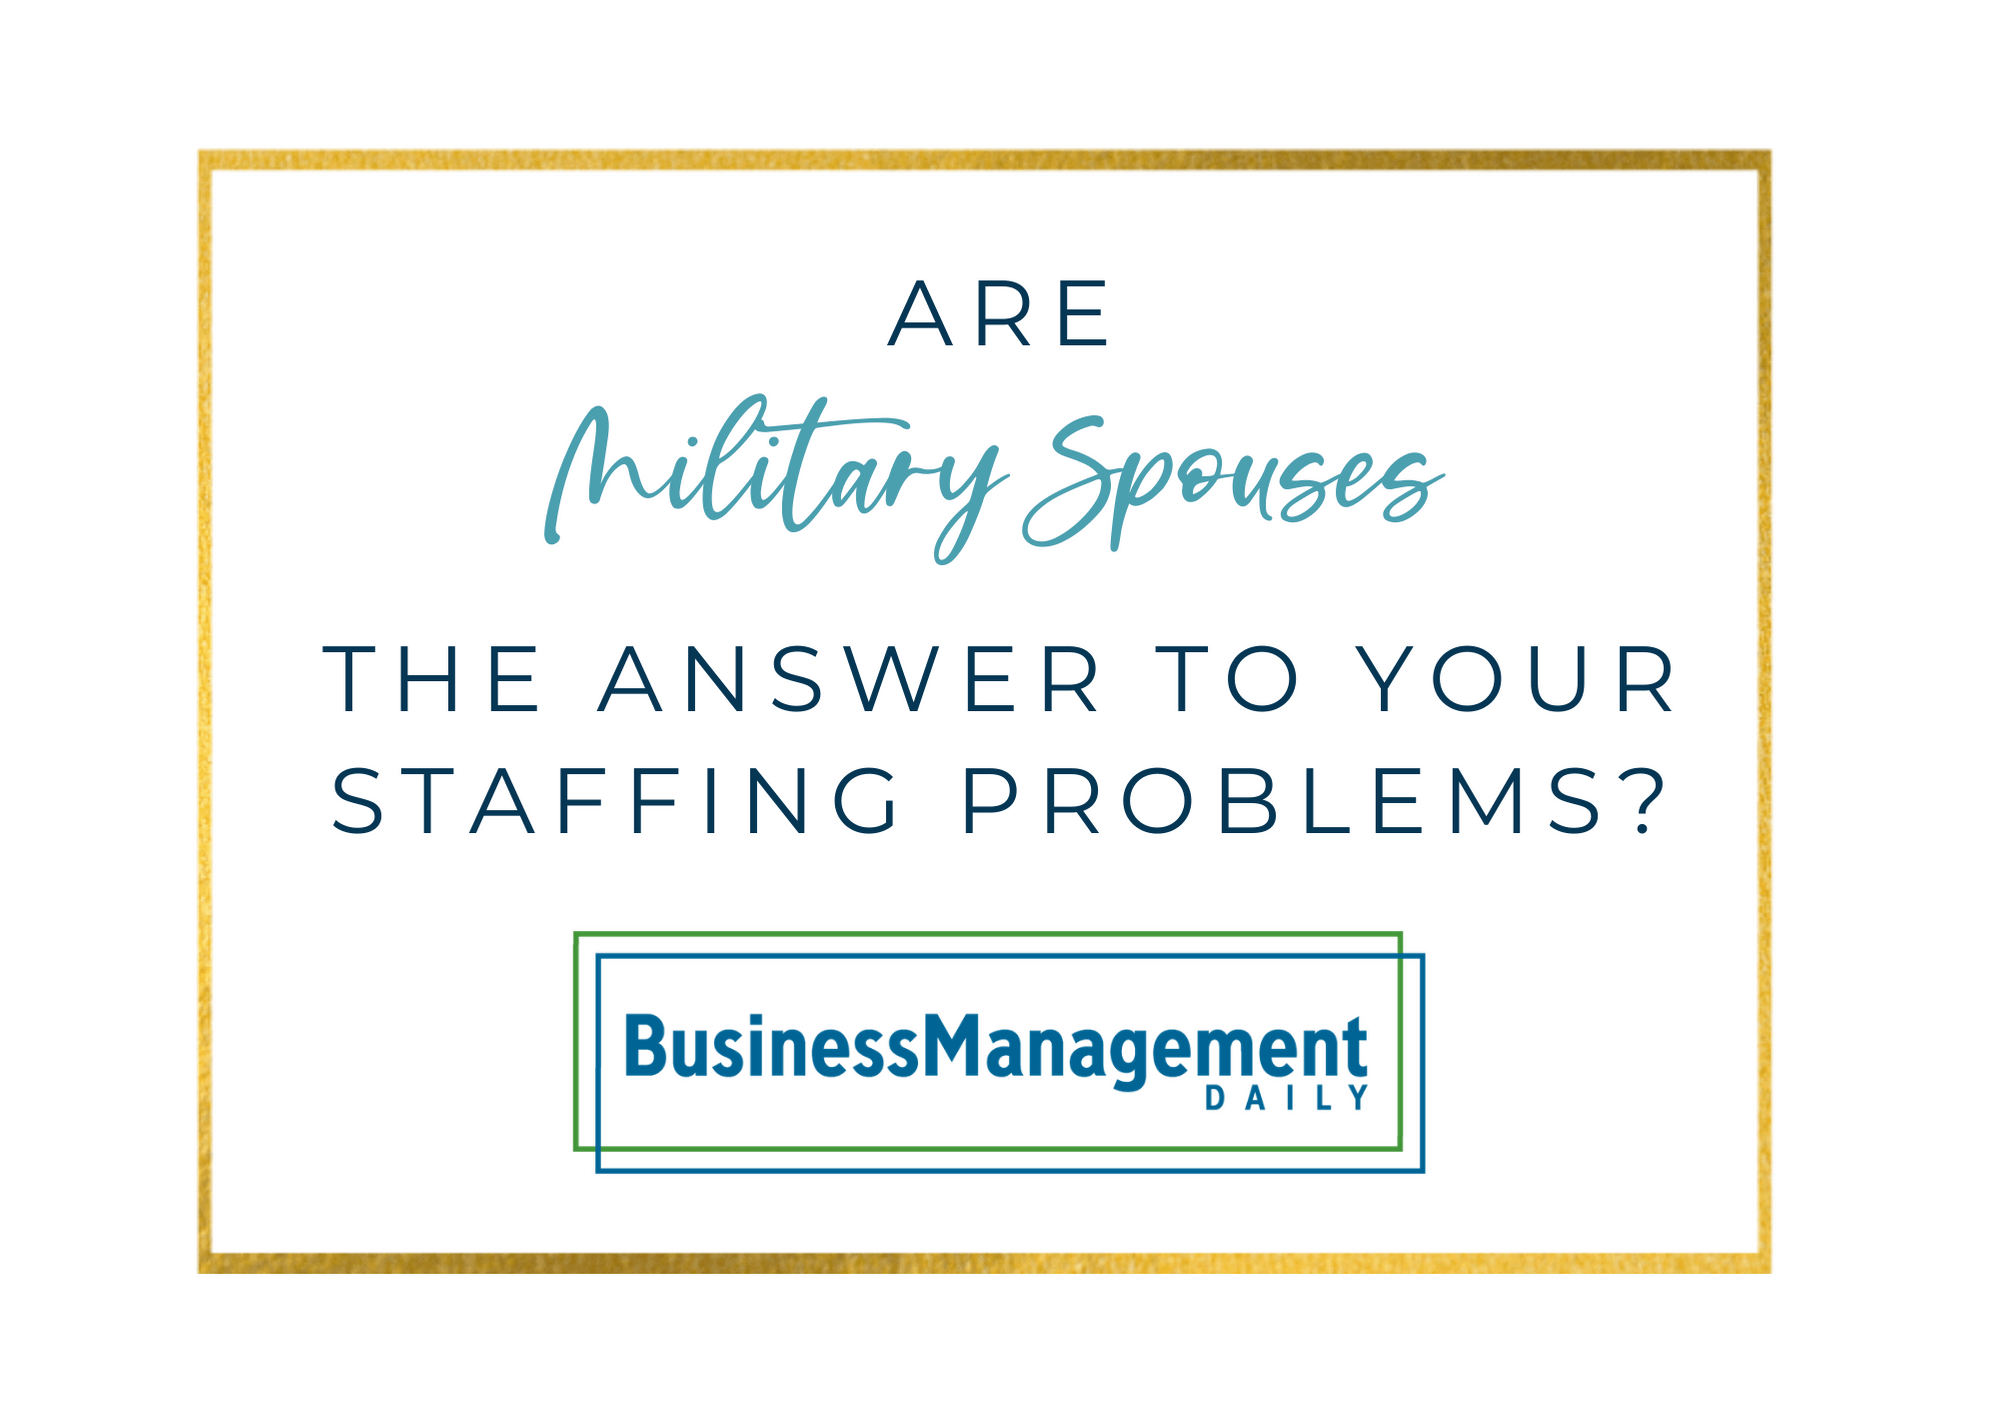 Are military spouses the answer to your staffing problems?